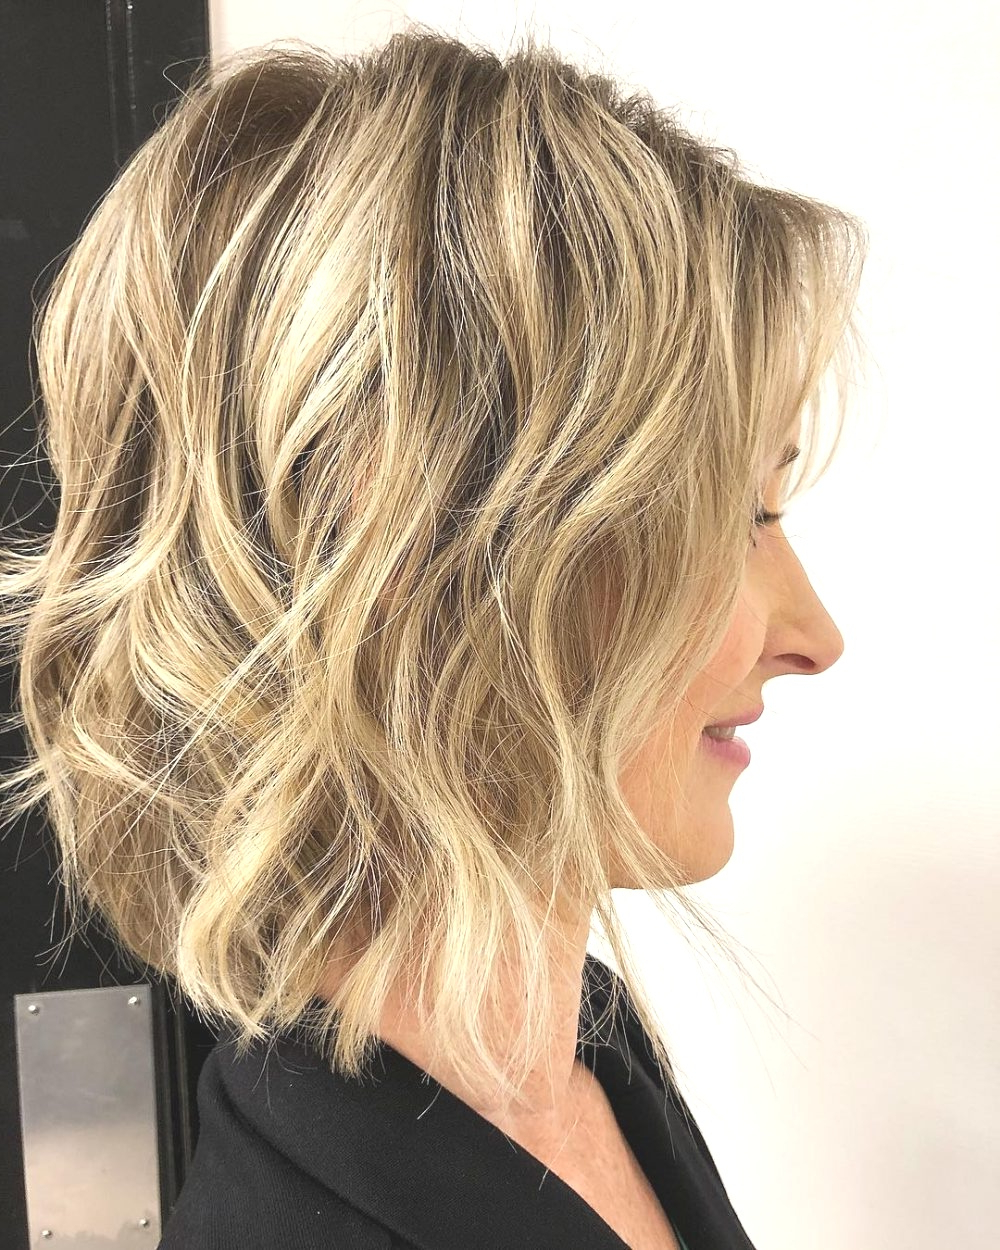 Hairstyles : Messy Layered Short Hair Appealing 46 Perfect Intended For Best And Newest Messy Layered Haircuts For Fine Hair (View 4 of 20)